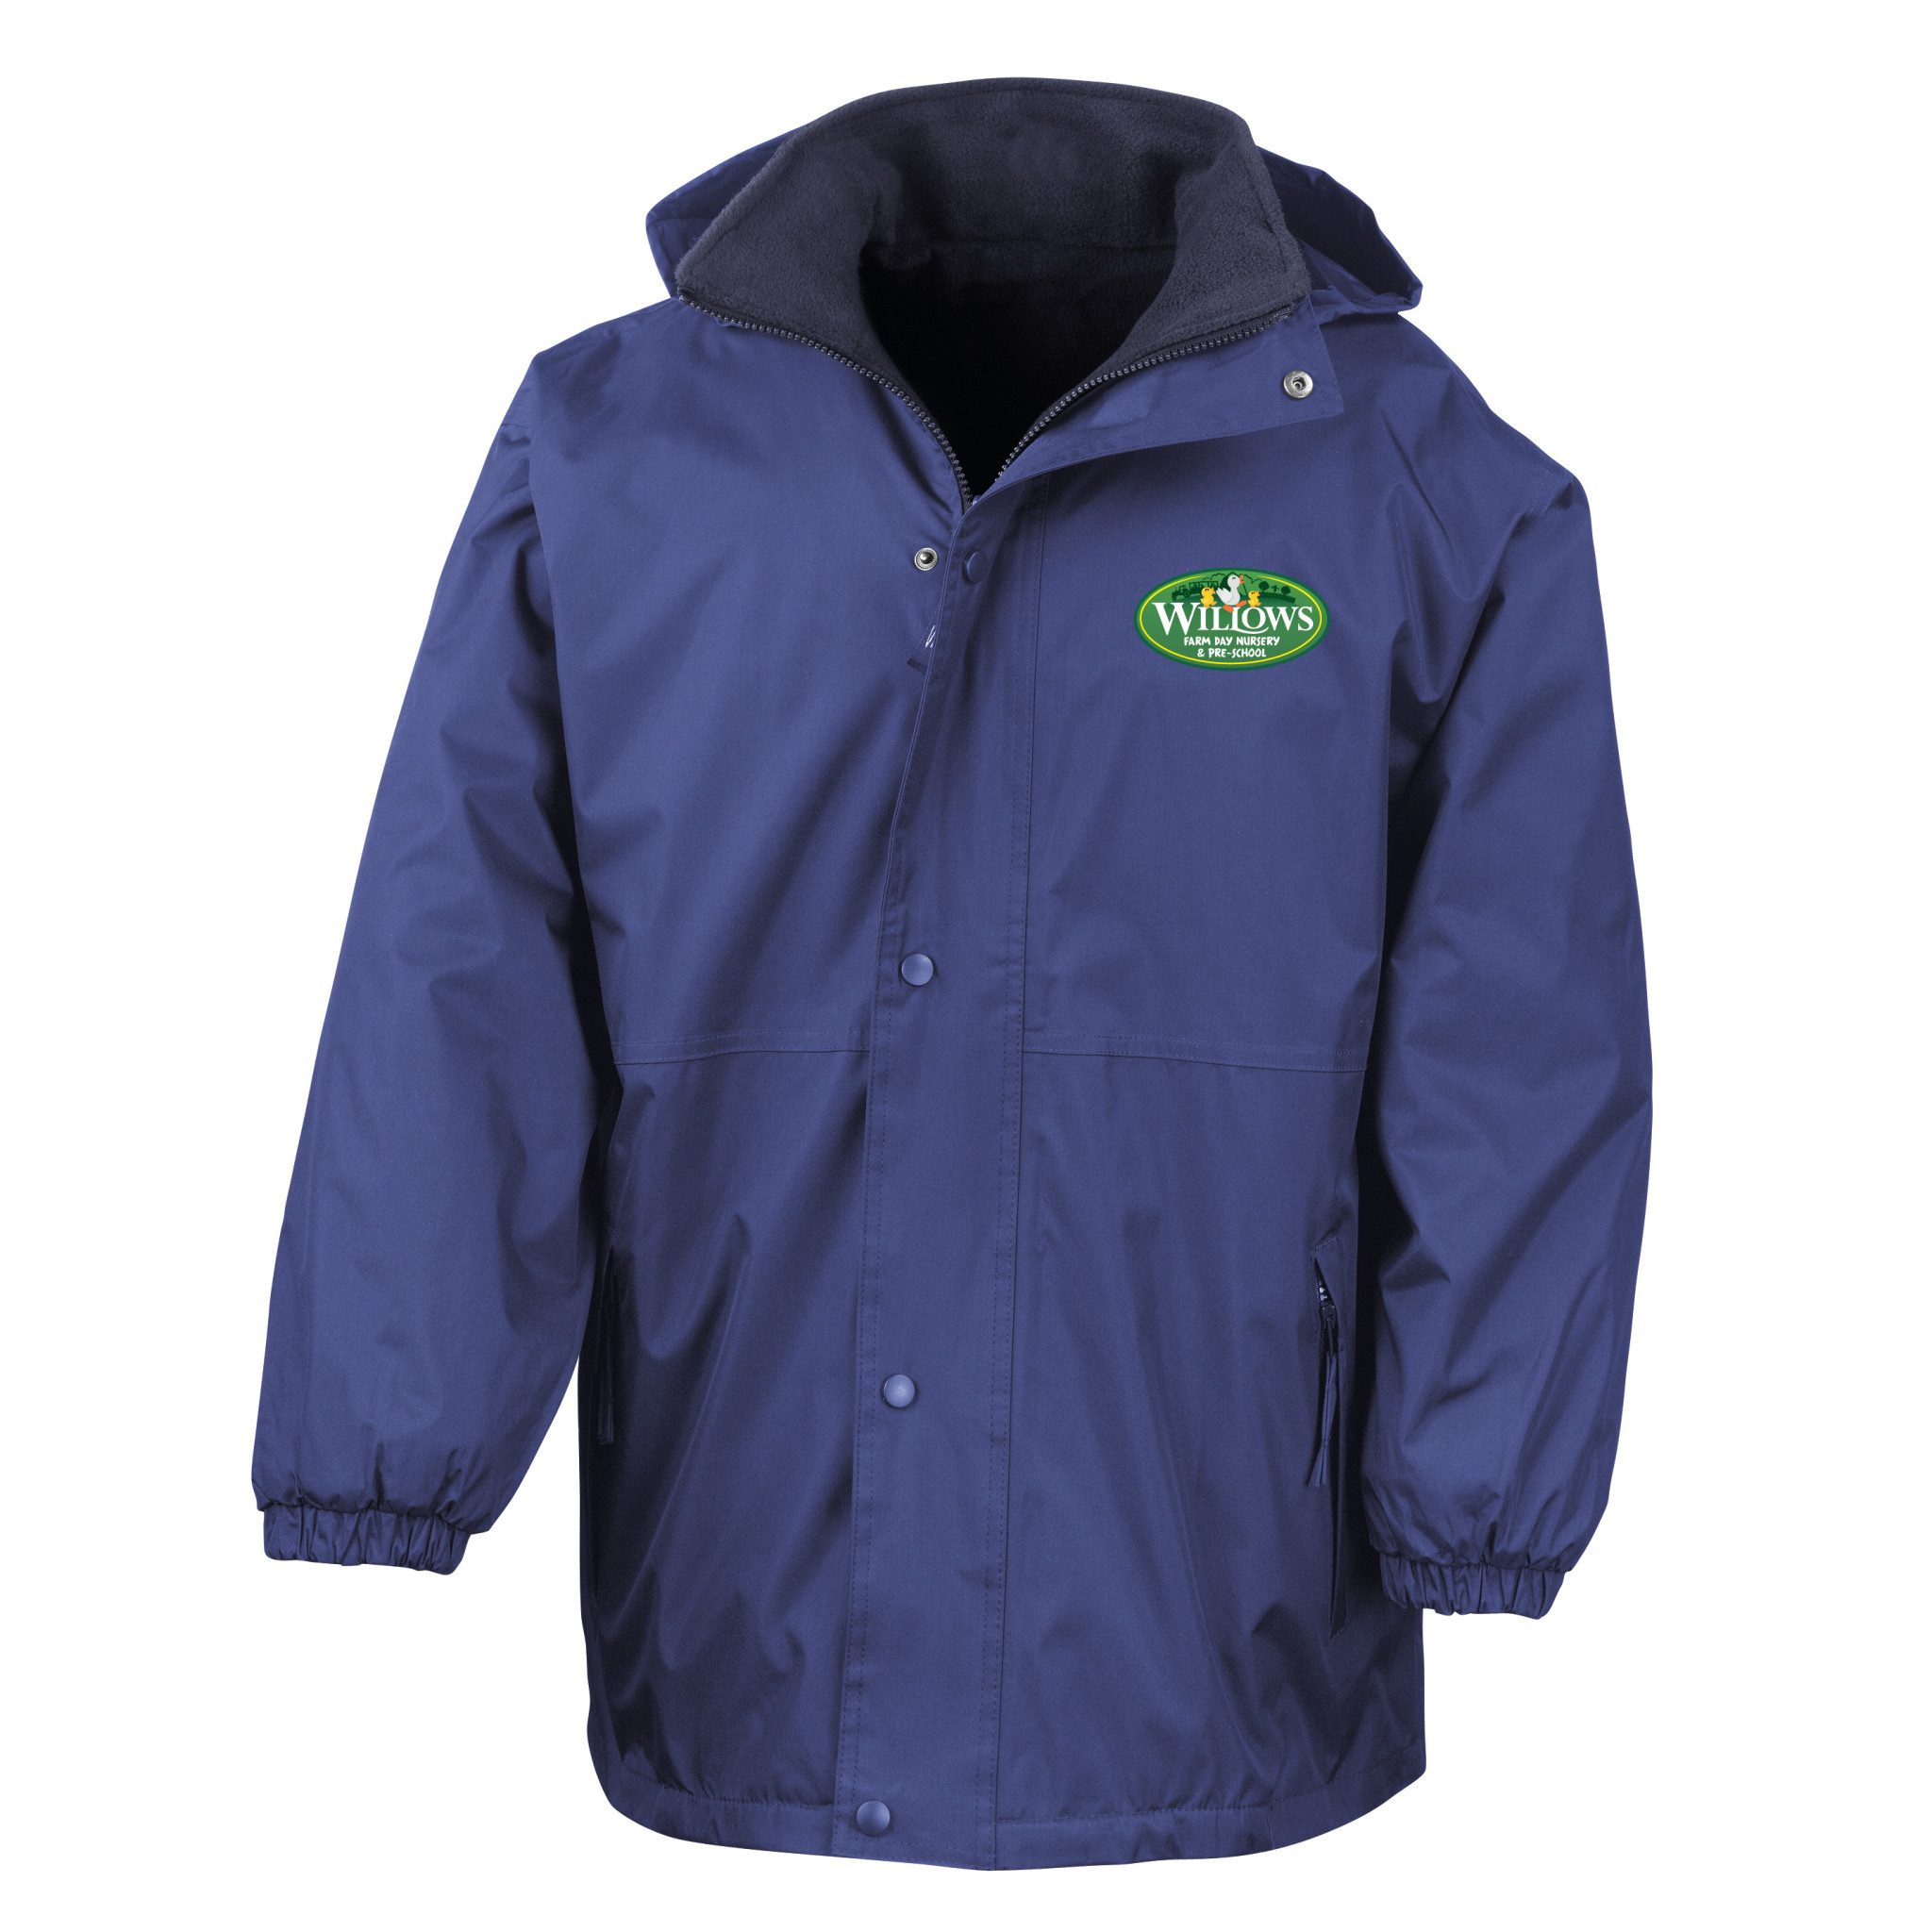 Willows Nursery Adults Reversible Jacket